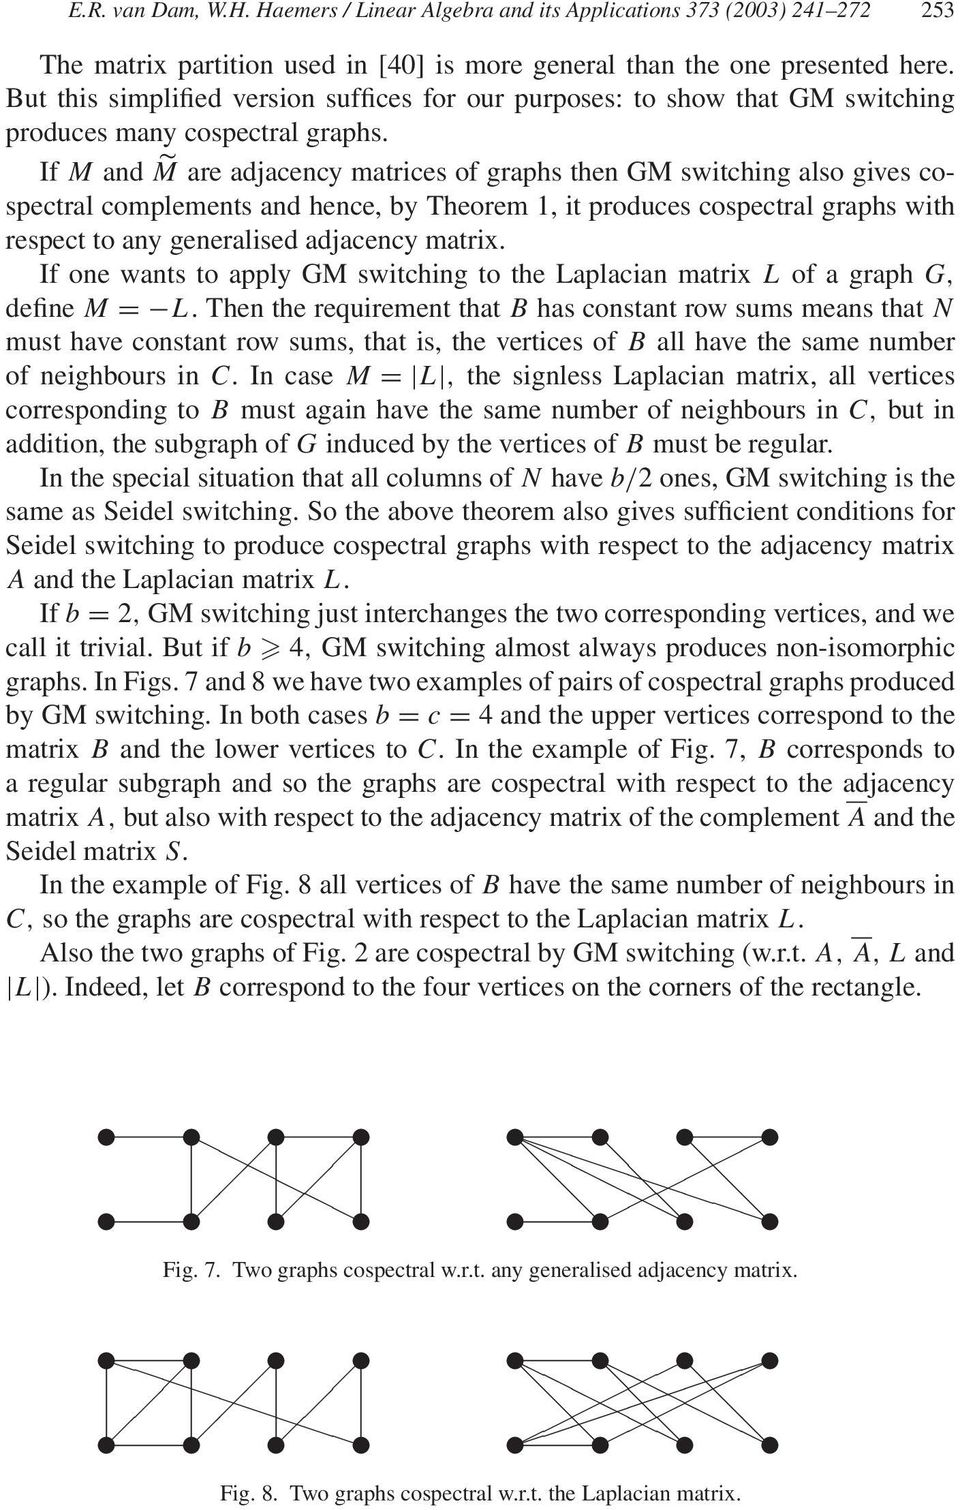 If M and M are adjacency matrices of graphs then GM switching also gives cospectral complements and hence, by Theorem 1, it produces cospectral graphs with respect to any generalised adjacency matrix.